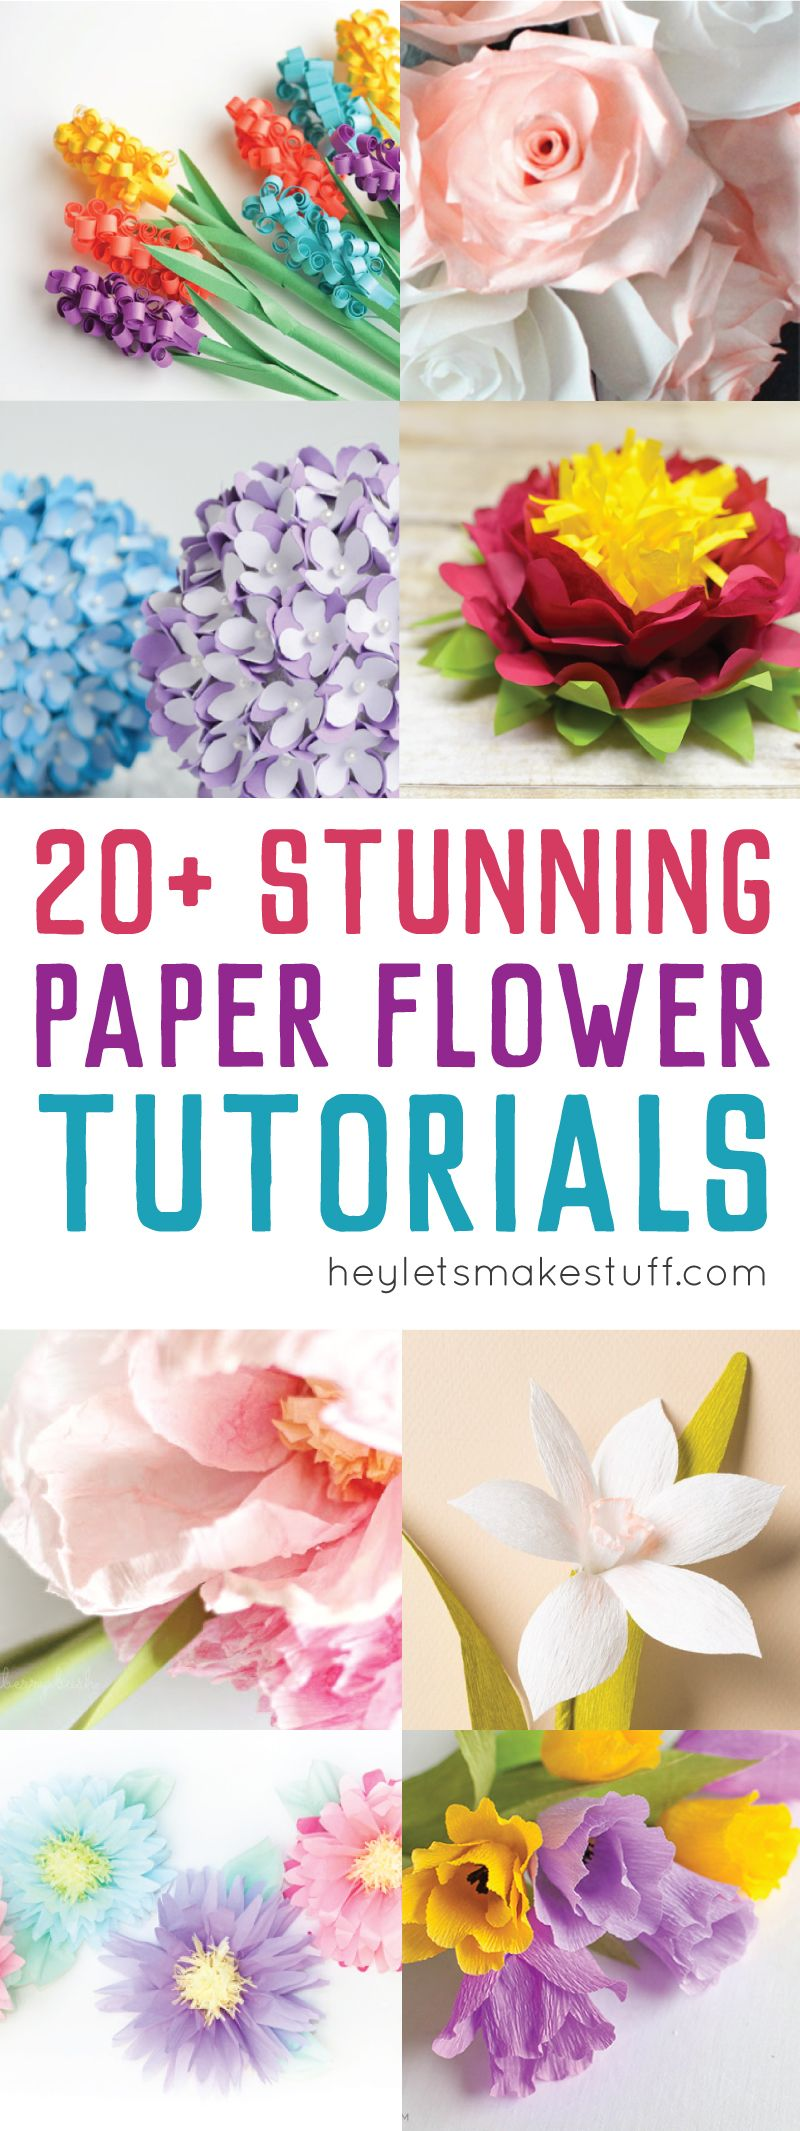 Stunning Paper Flower Tutorials  PAPER FLOWERS  Pinterest